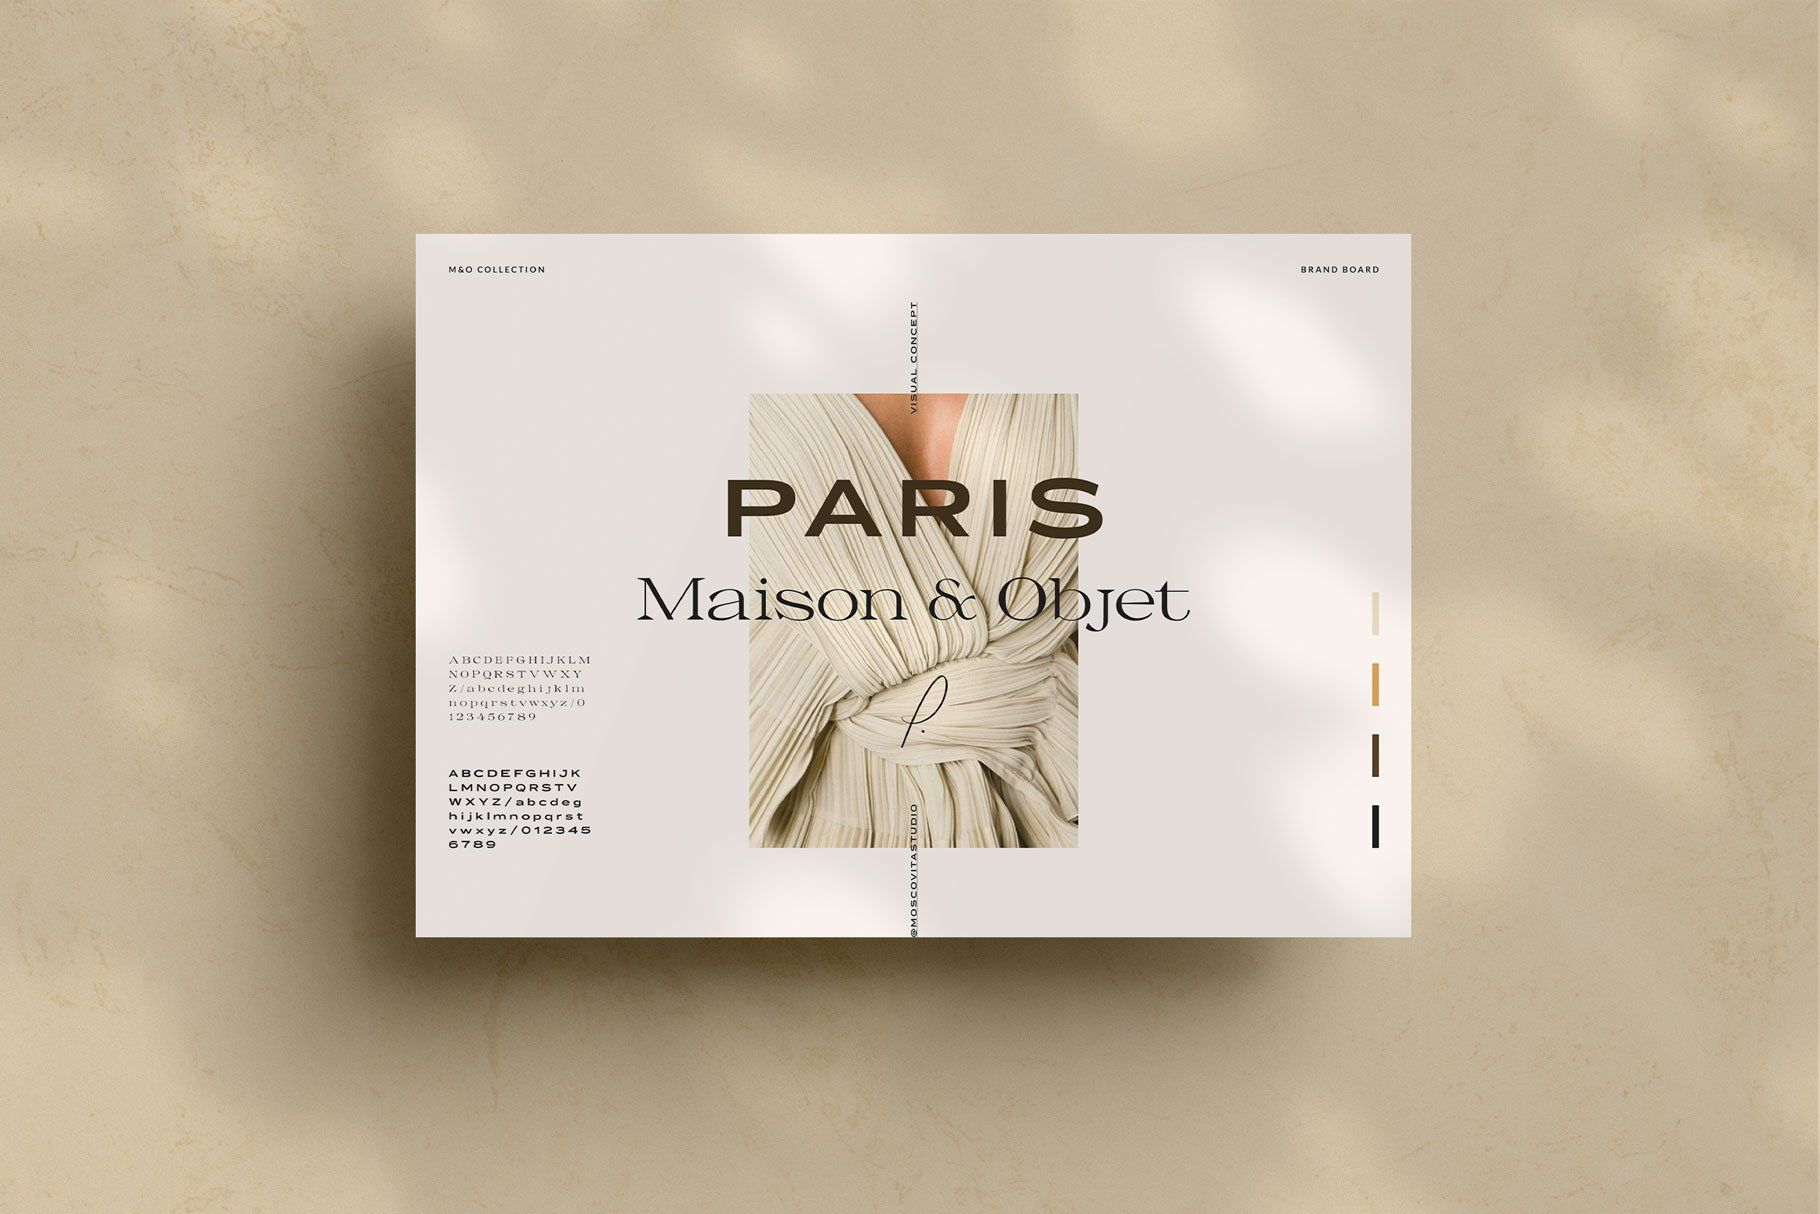 Brand Boards By Moscovita On Creativemarket In 2020 Brand Board Template Brand Board Professional Business Cards Templates